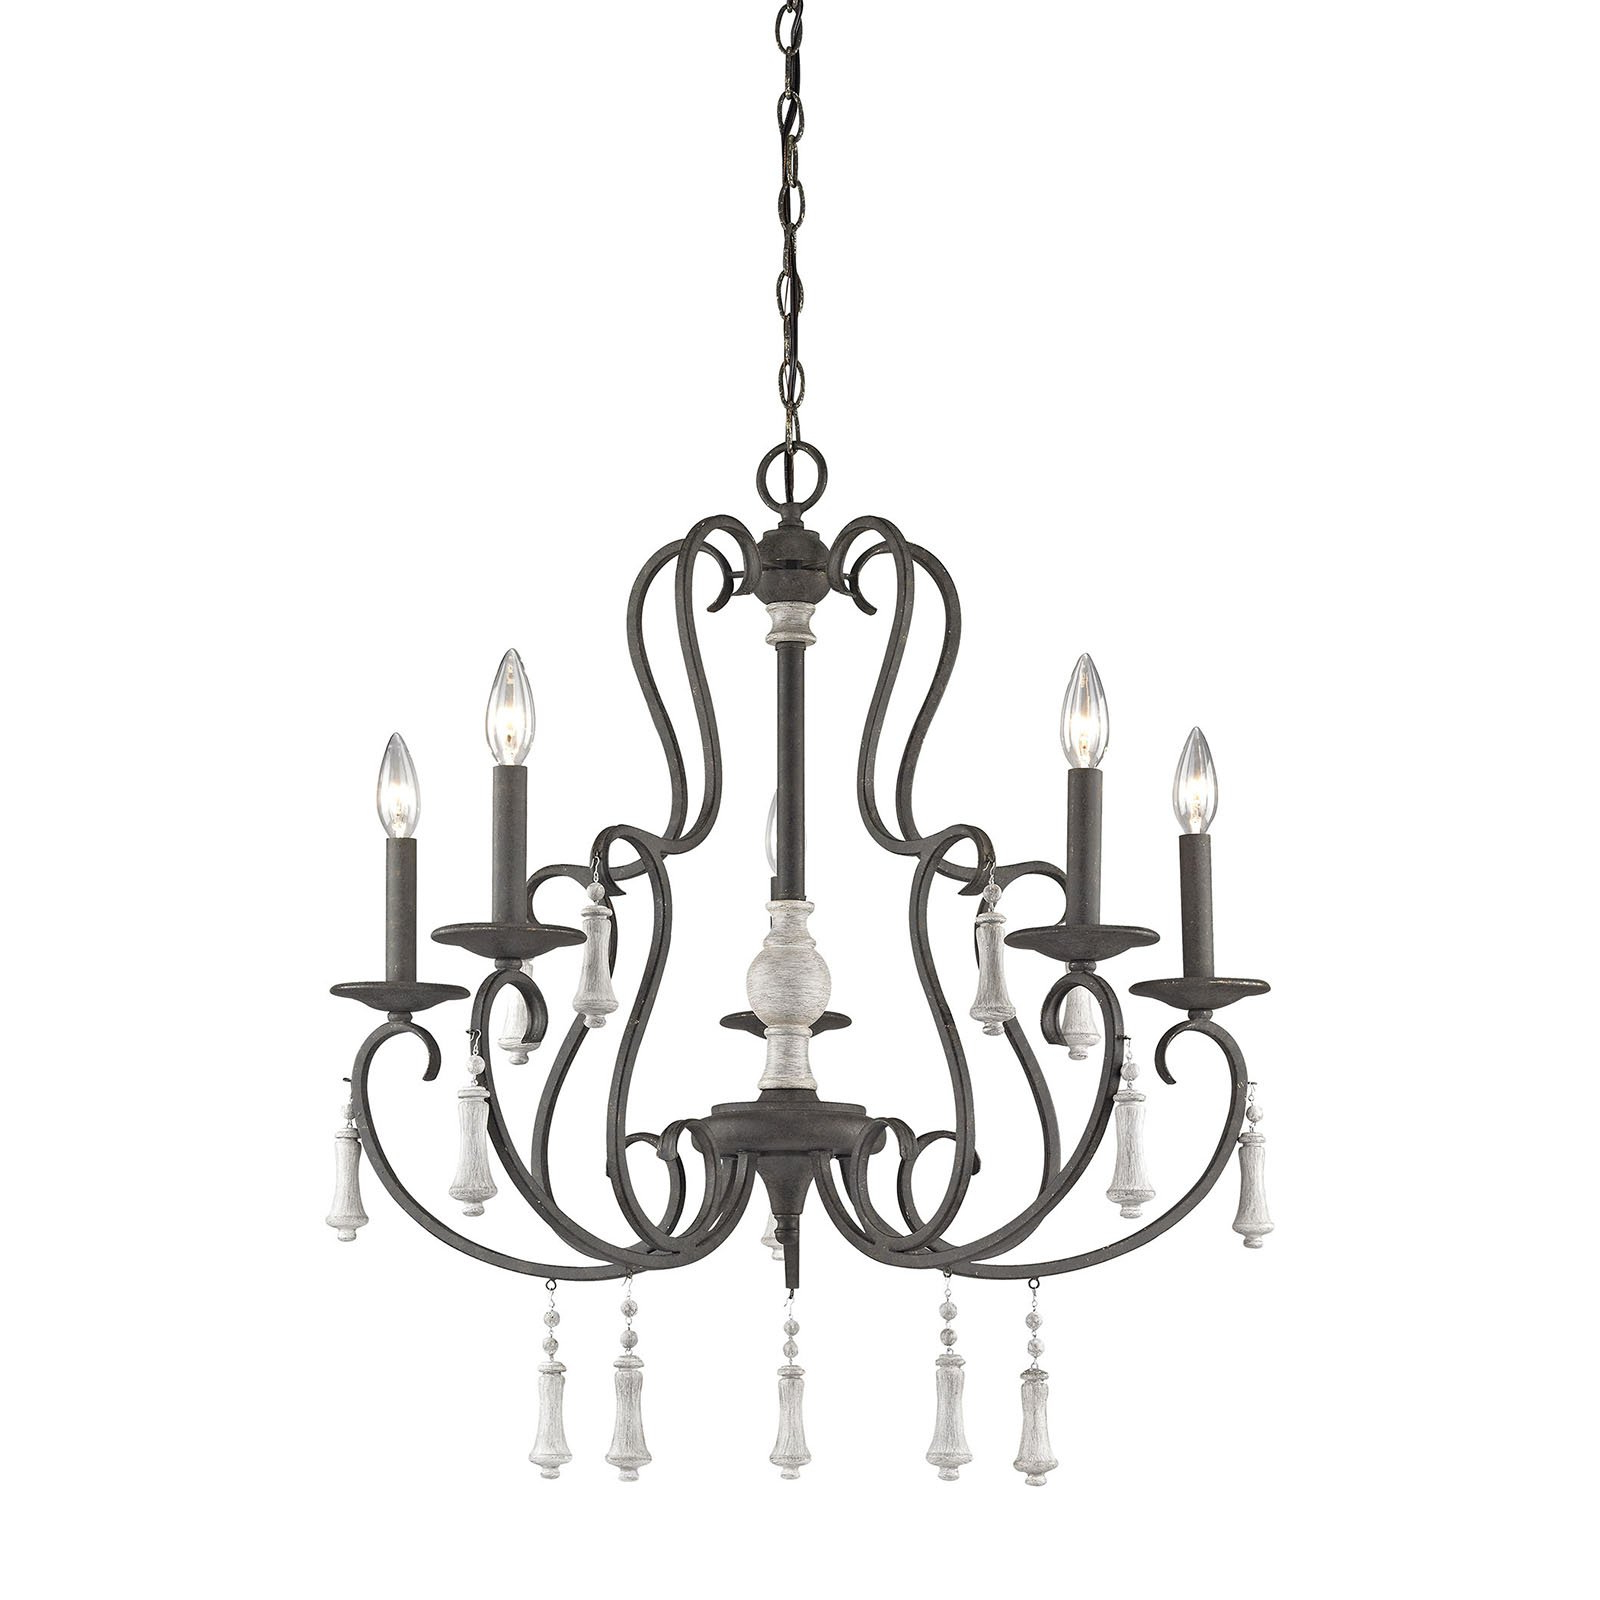 Berger 5-Light Candle Style Chandeliers in Most Current Elk Lighting Porto Cristo 52022/5 5 Light Chandelier In 2019